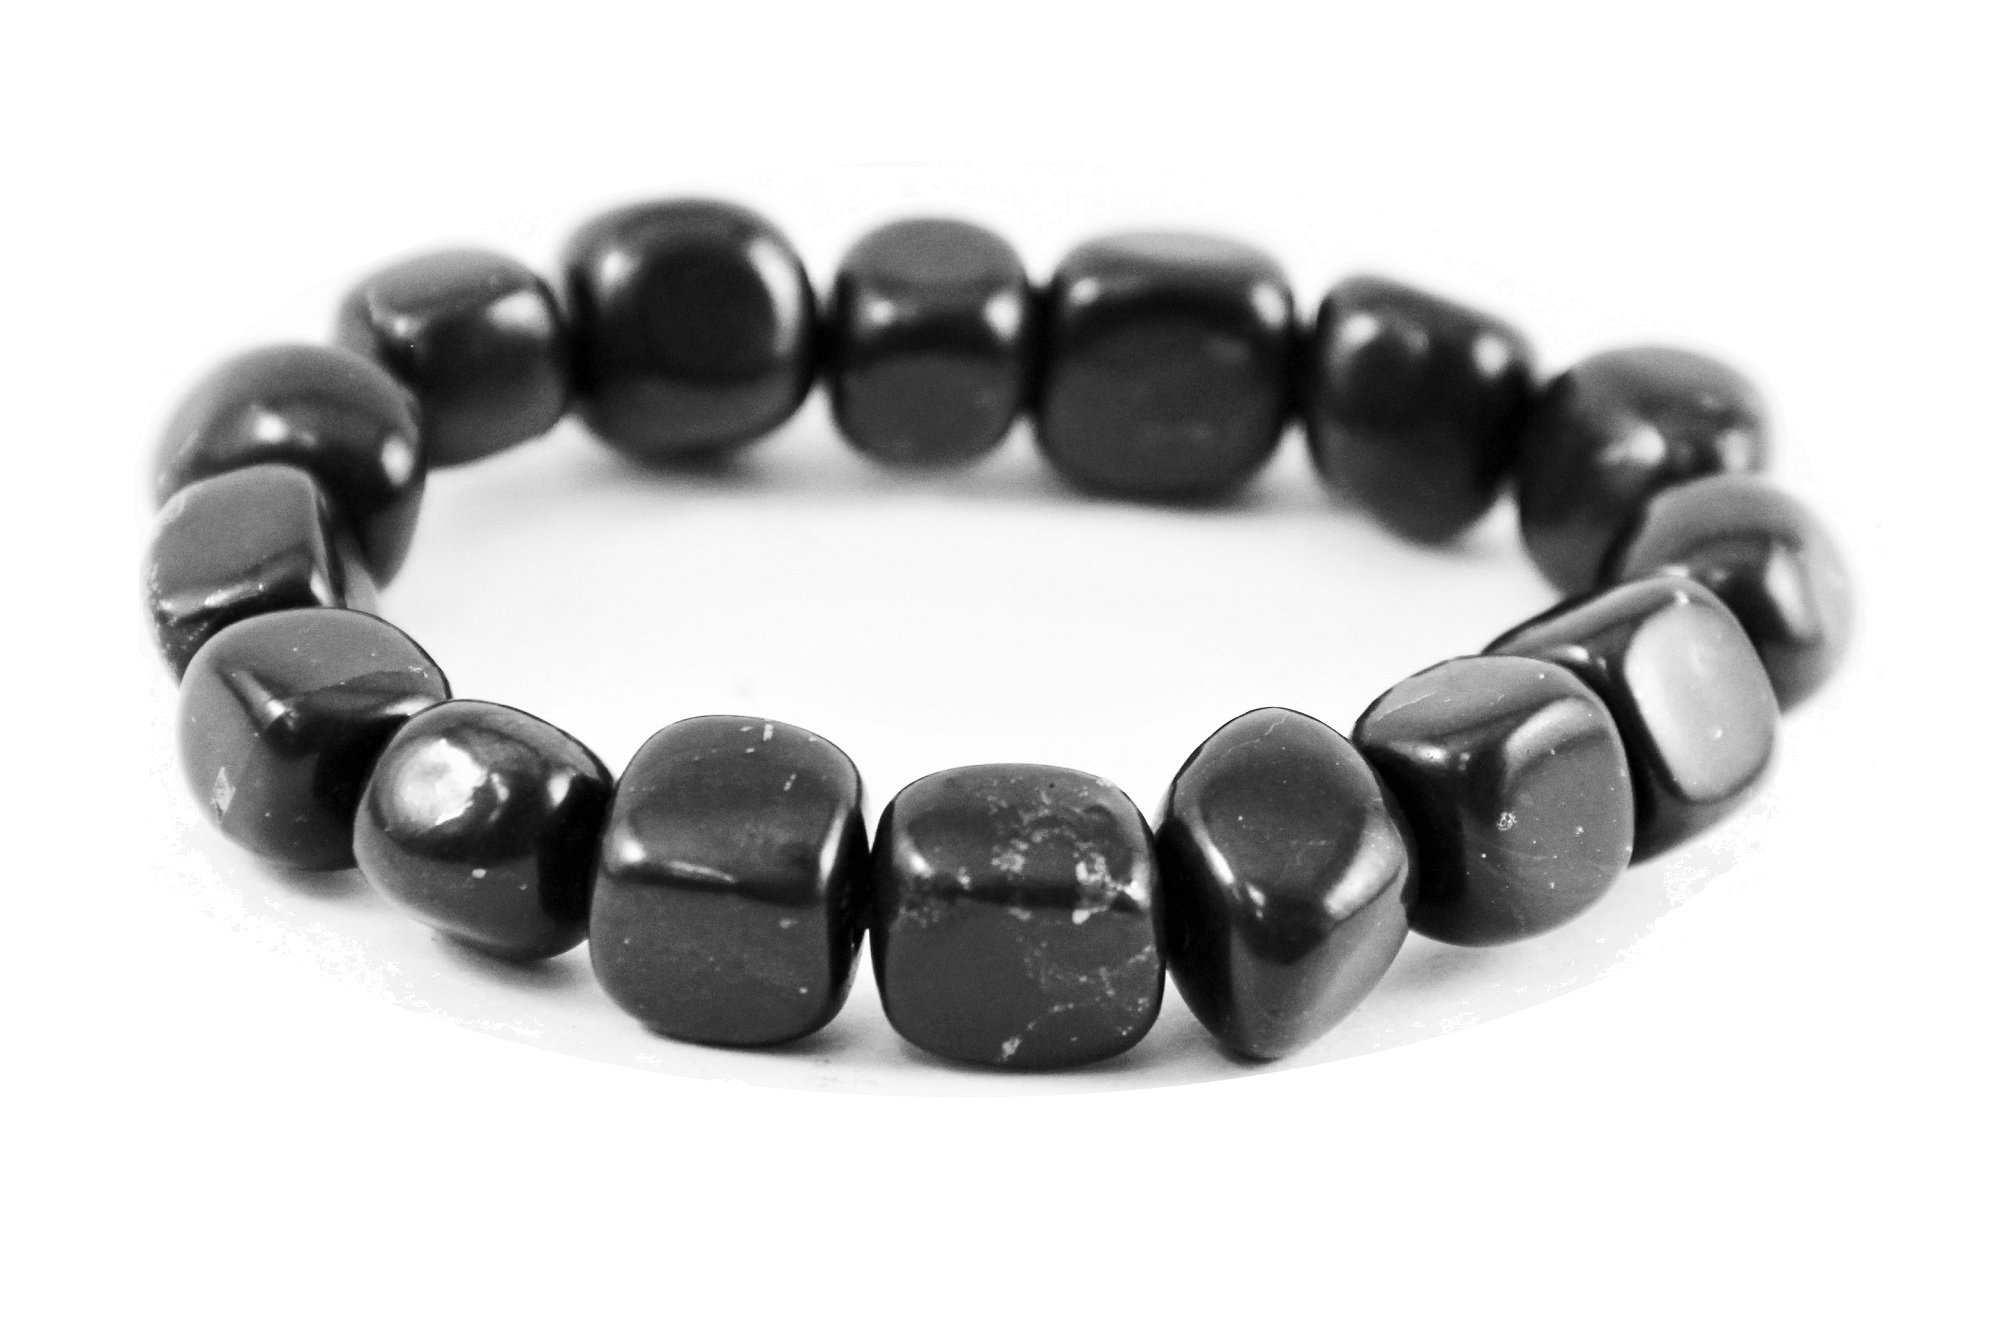 Karelian Heritage Authentic Shungite Crystal Bracelet with Tumbled Beads, Natural Protection Jewelry SB12 by Karelian Heritage